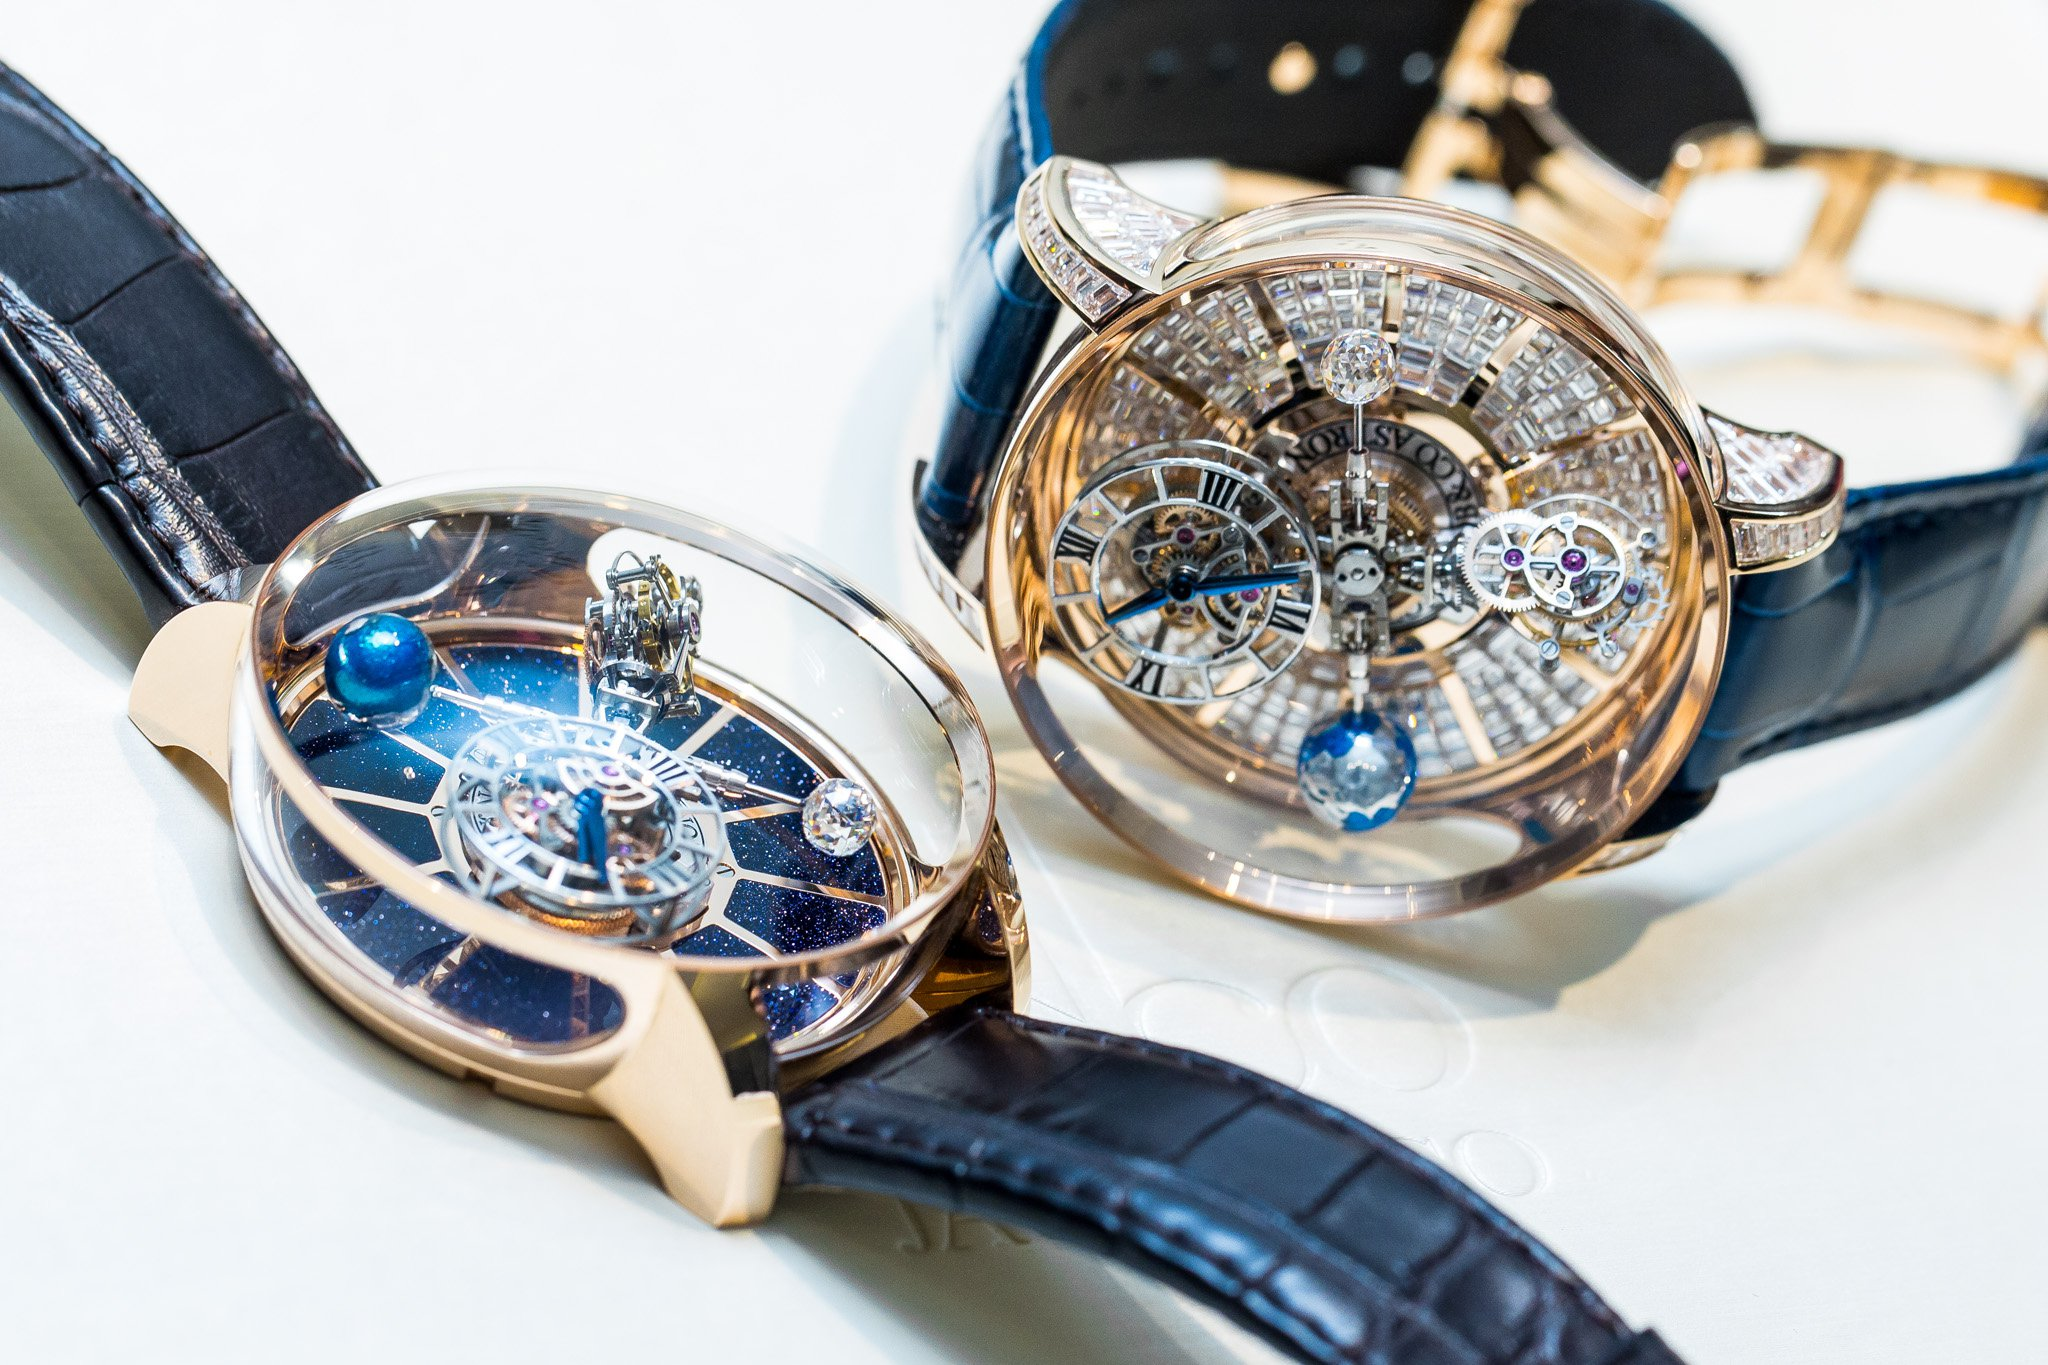 Jacob-Co-Astronomia-Tourbillon-Baguette-Watch-Baselworld-2015-Collection